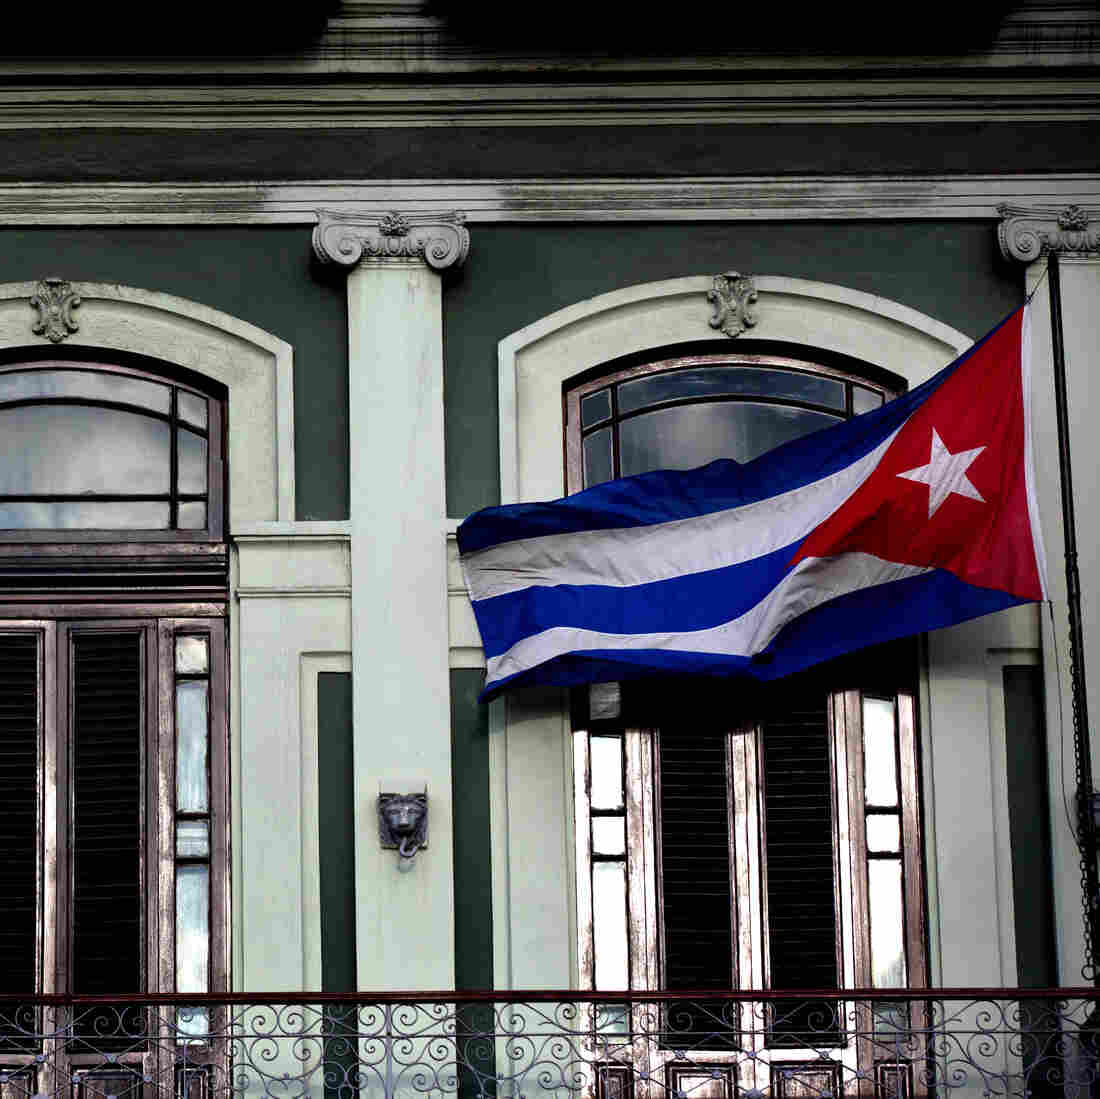 U.S. And Cuba Will Hold Second Round Of Normalization Talks In Washington